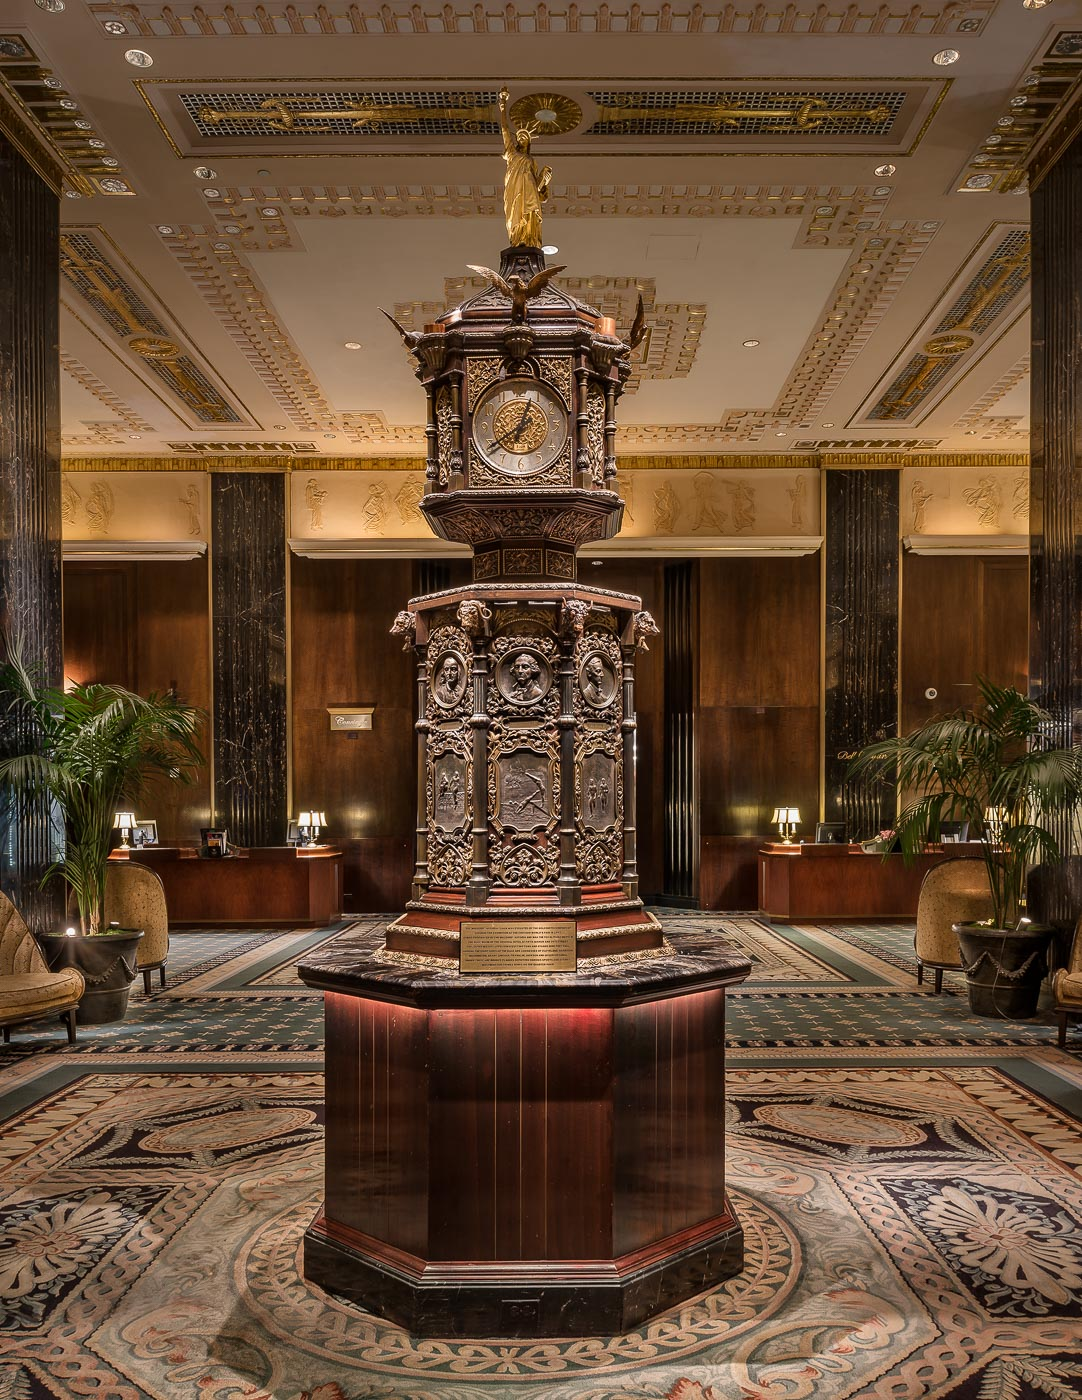 Main lobby at The Waldorf Astoria Hotel, New York